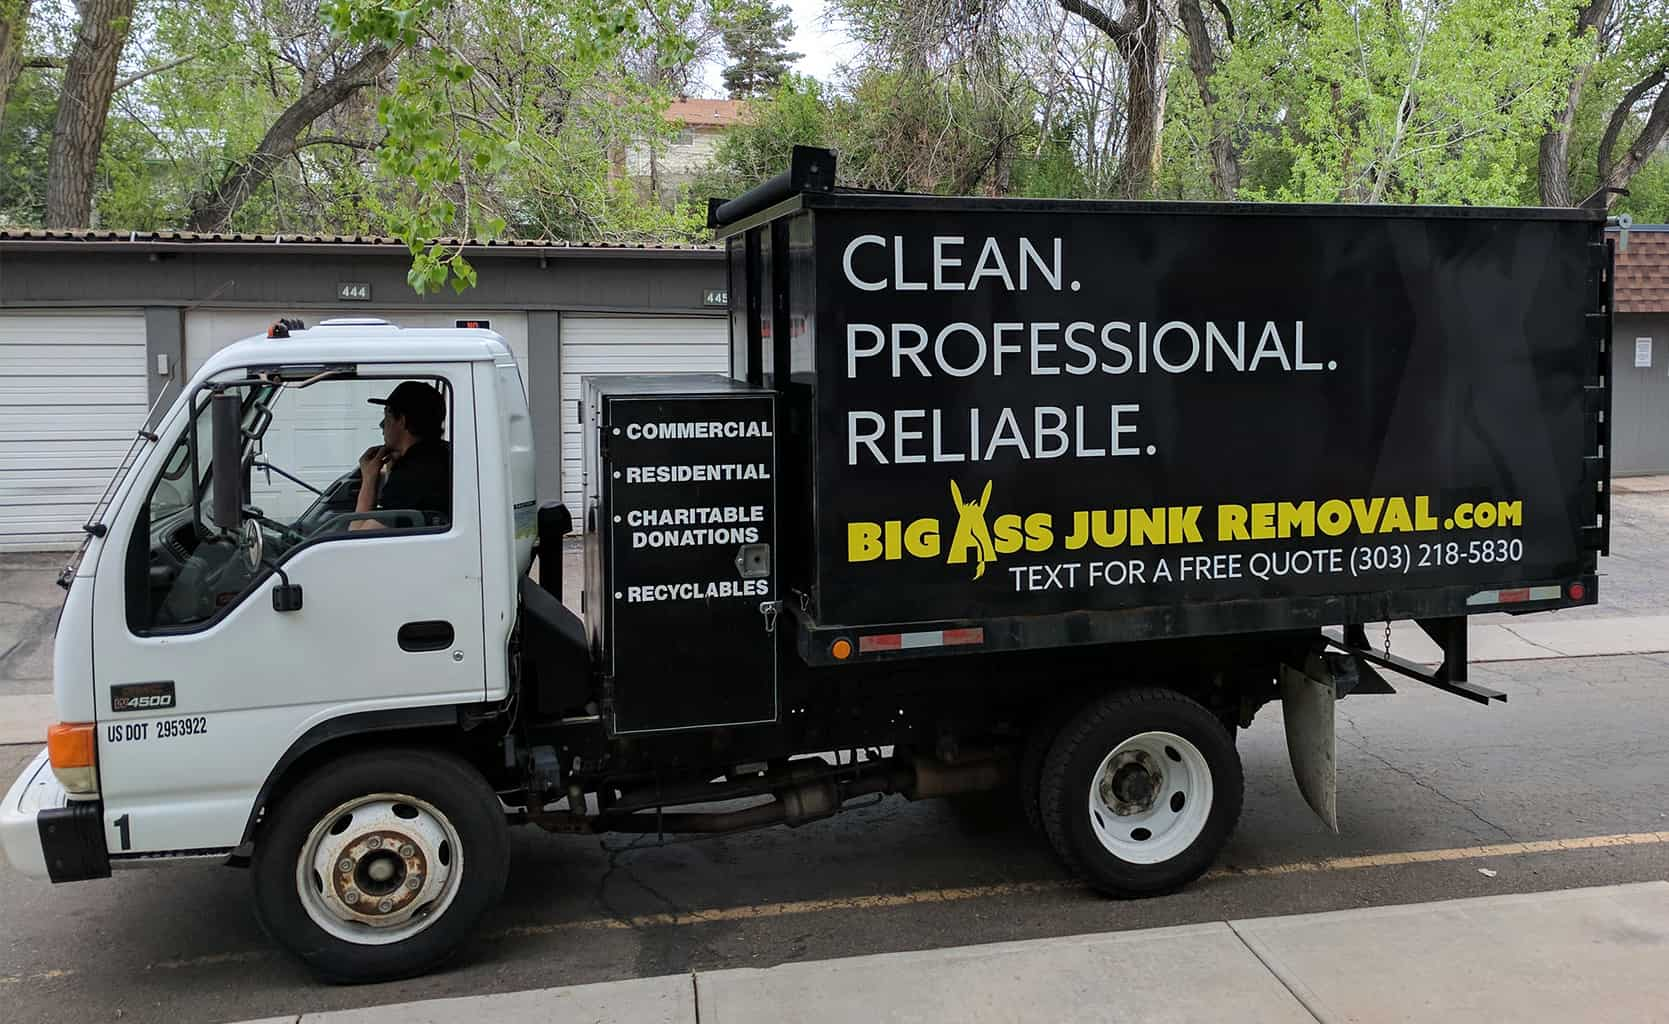 Schedule Your Same Day Junk Removal Service Online Now